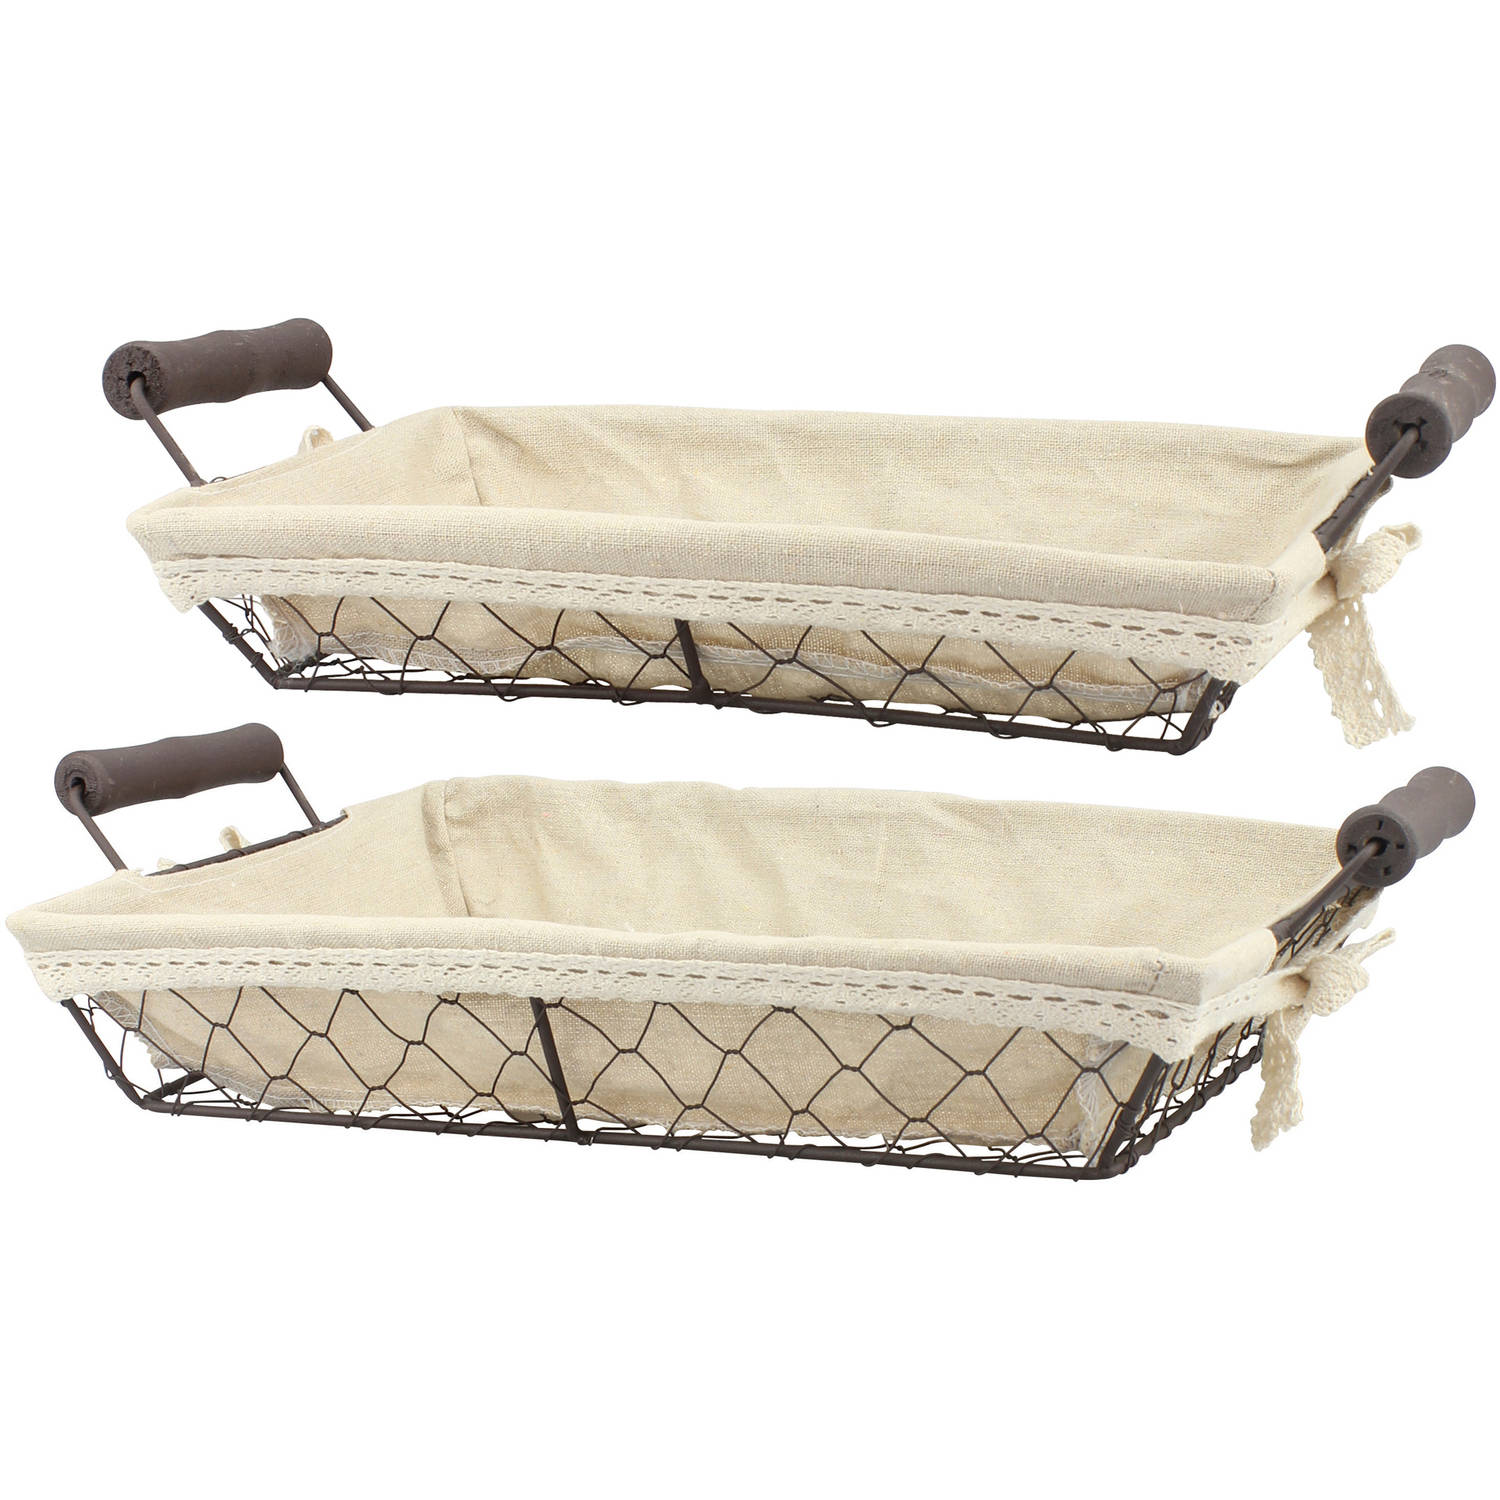 Set of 2 Rectangular Wire Baskets with Fabric